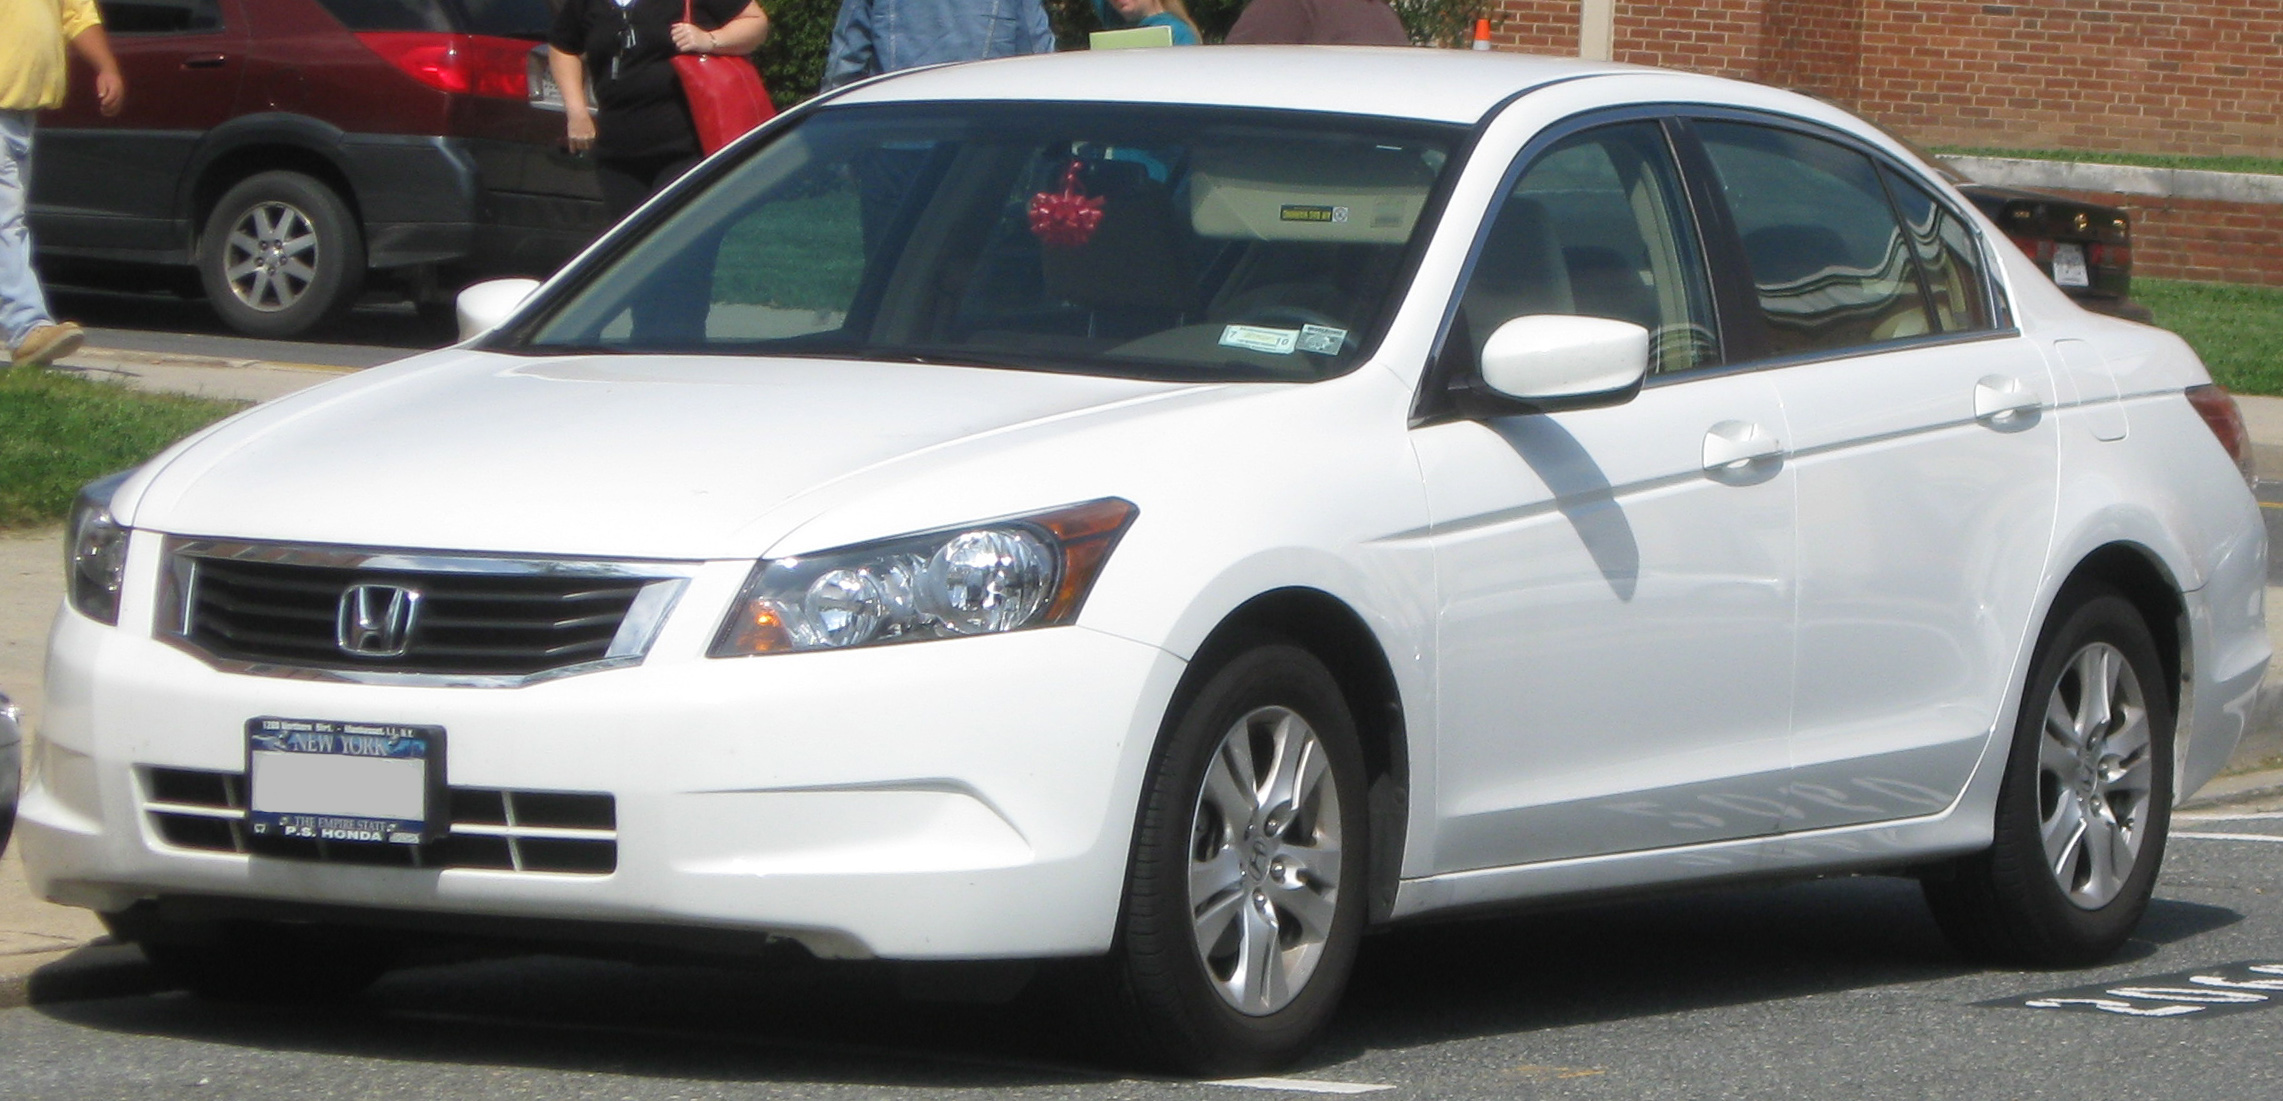 File Honda Accord Sedan 09 14 2009 Jpg